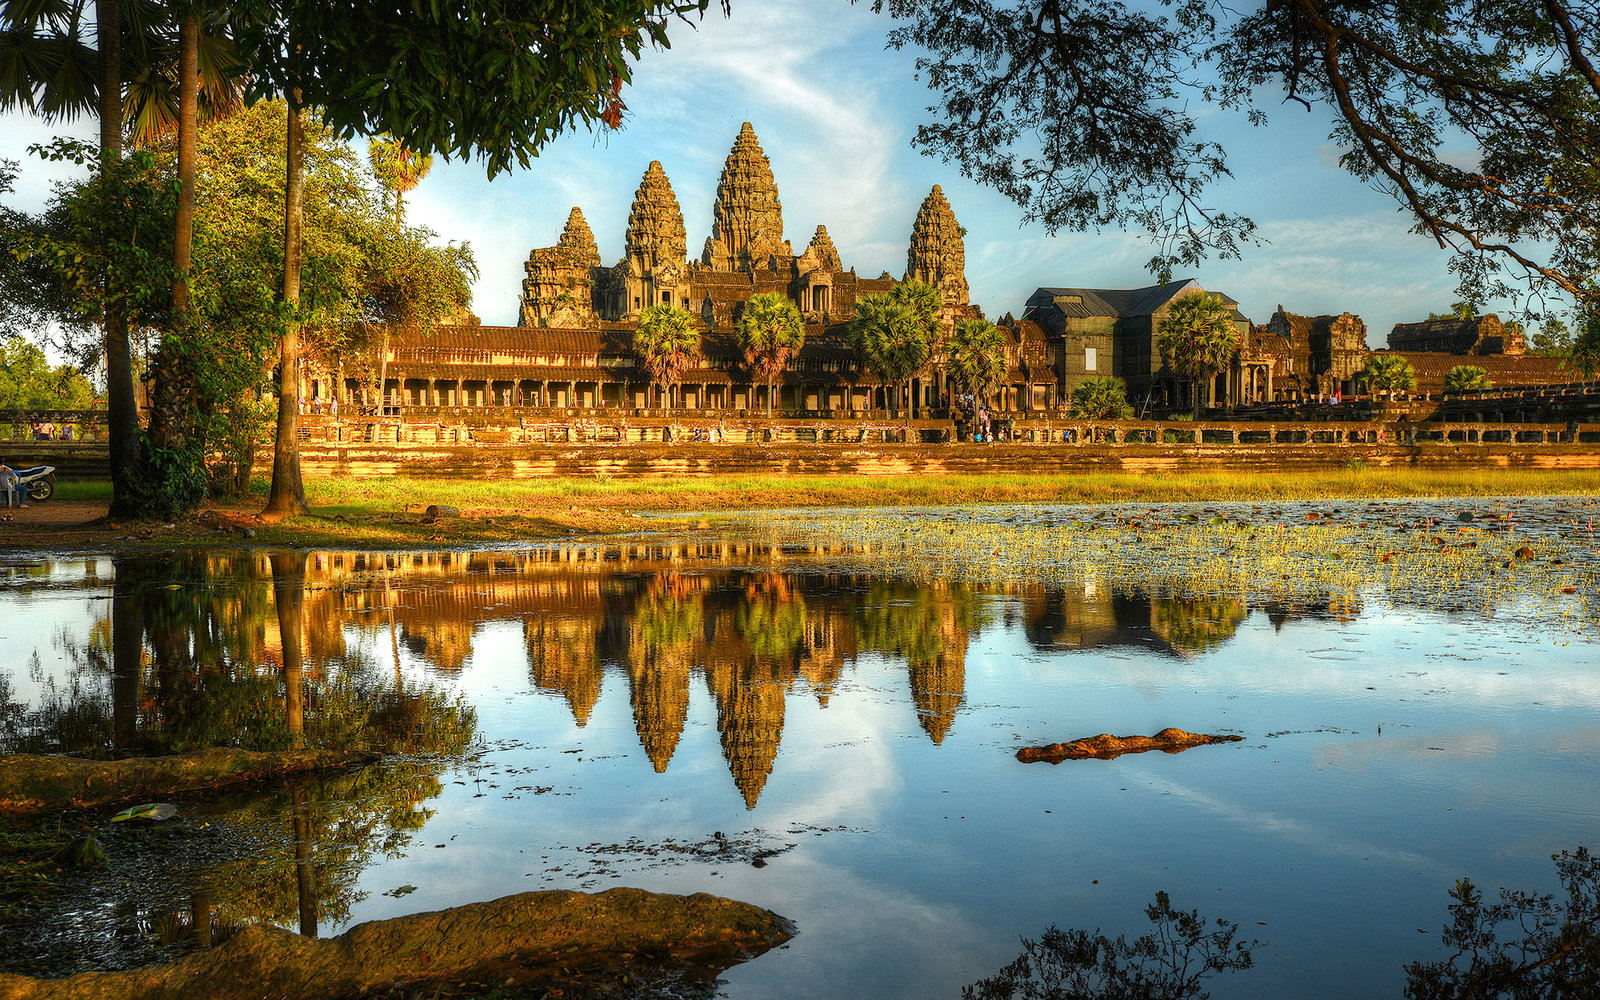 TripAdvisor trips of a lifetime